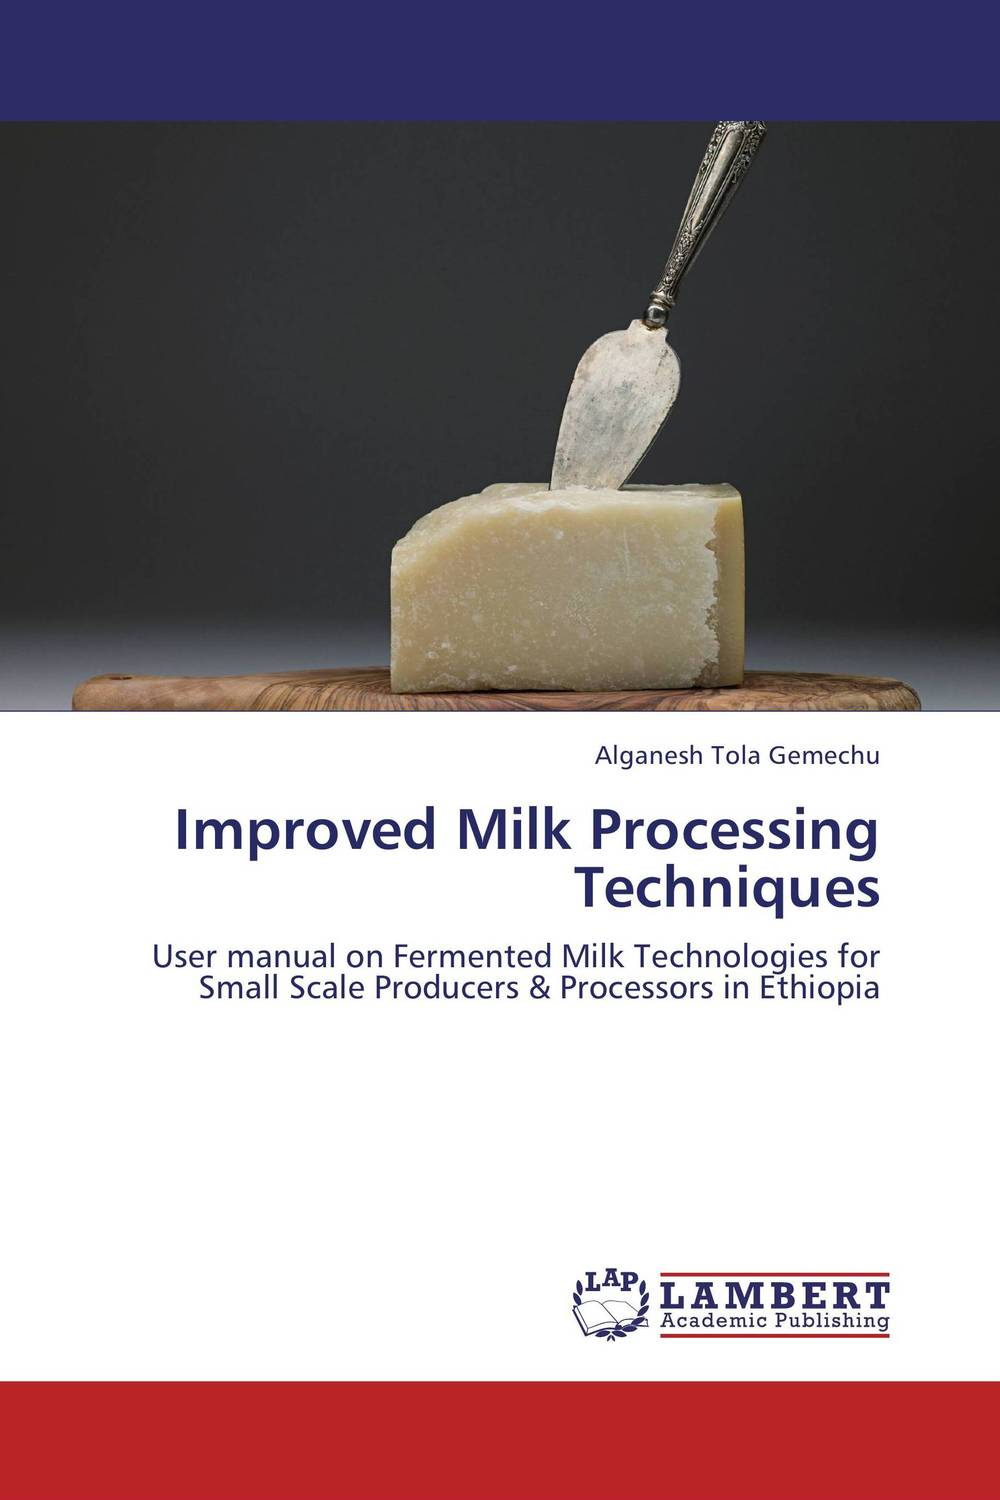 Improved Milk Processing Techniques improved milk processing techniques